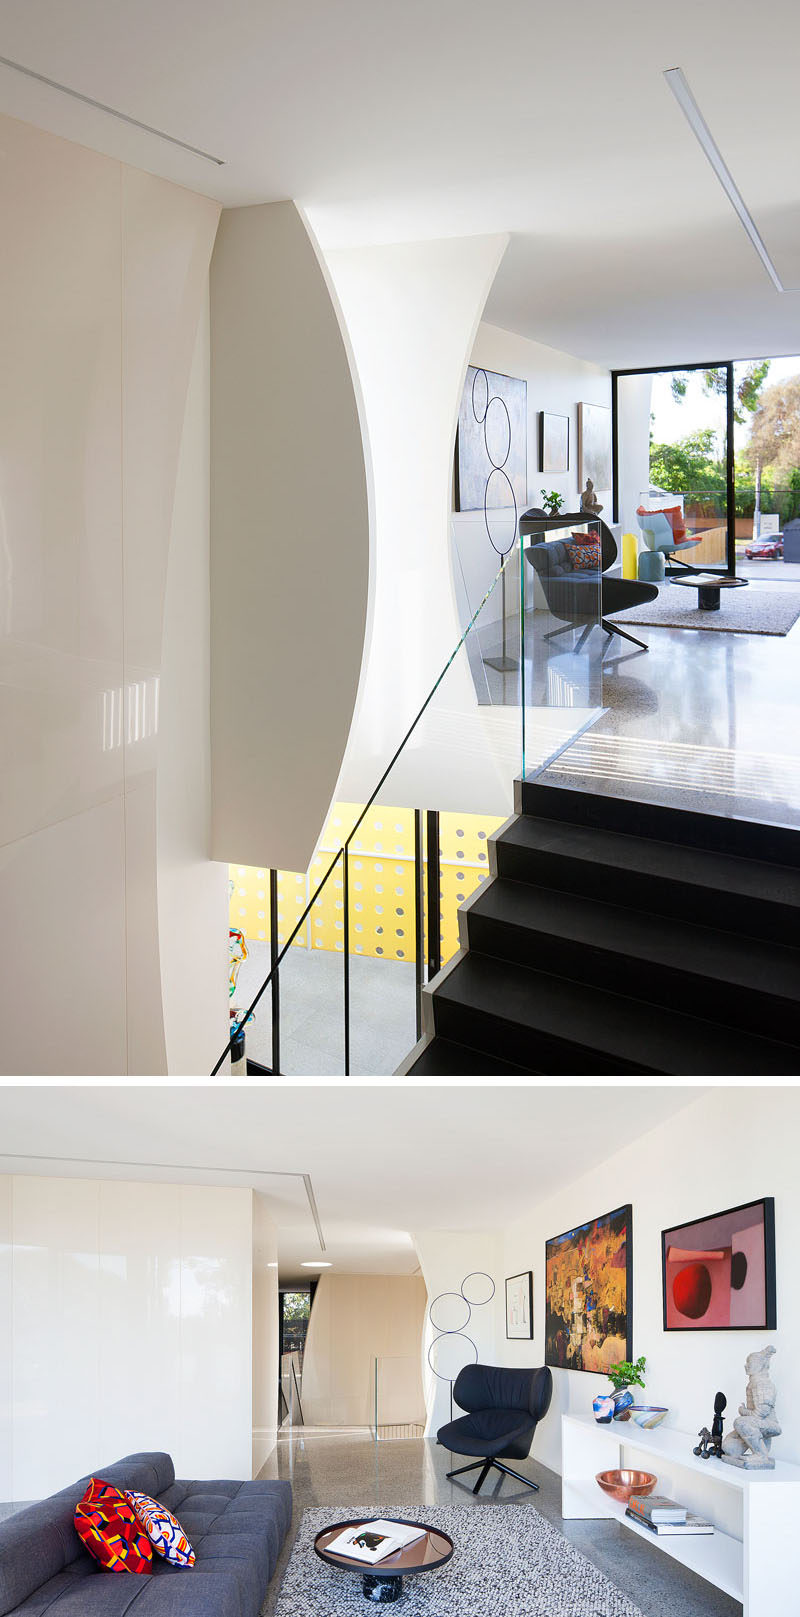 At the top of the stairs in this modern house, there's a small gallery area with multiple pieces of artwork and a sitting area to sit back, relax and appreciate the art pieces.